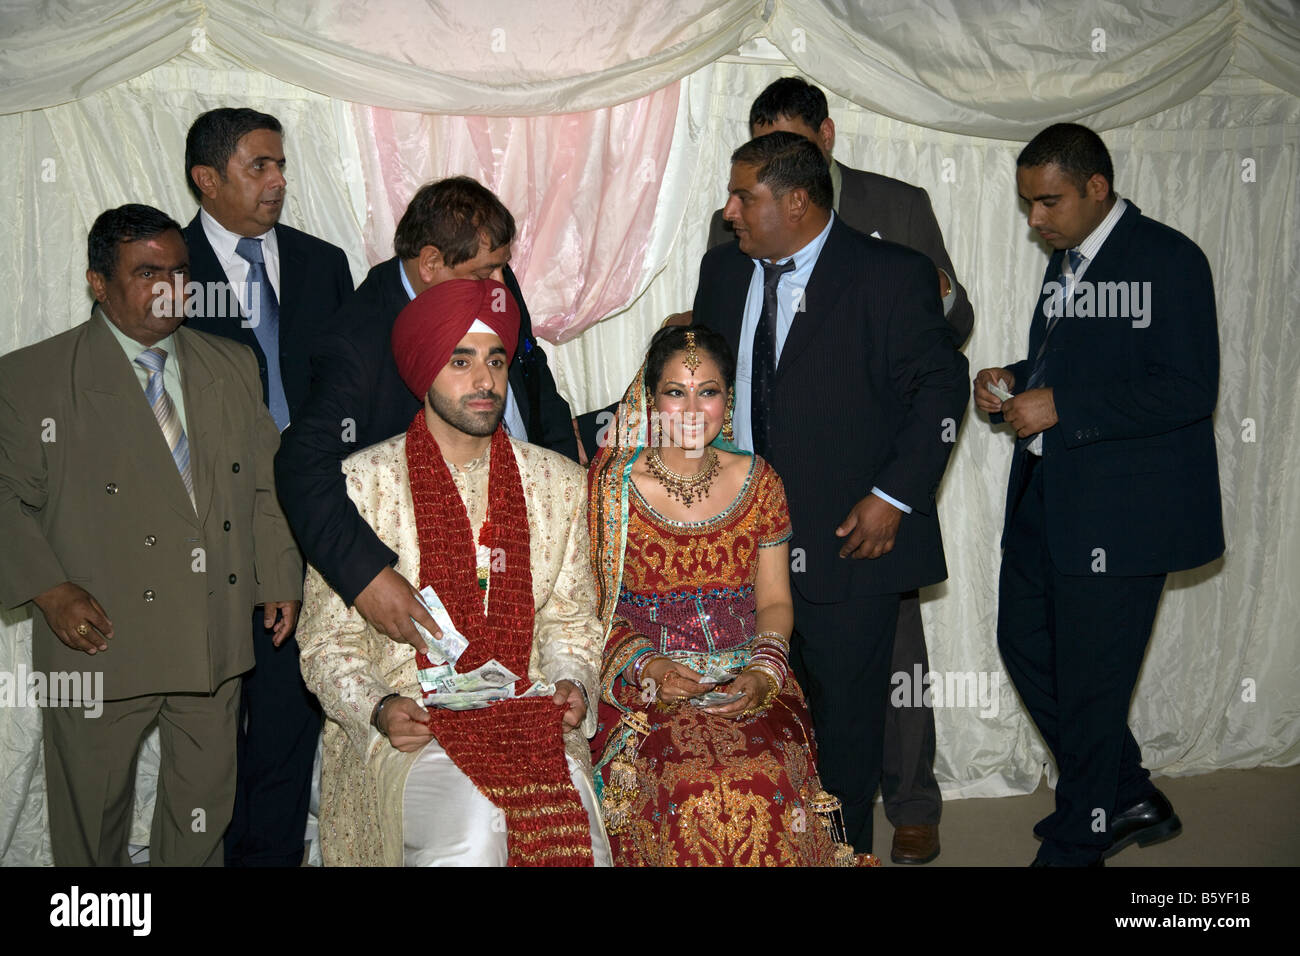 Wedding Guests Give Gifts Of Cash To The Bride And Groom At A Traditional Sikh